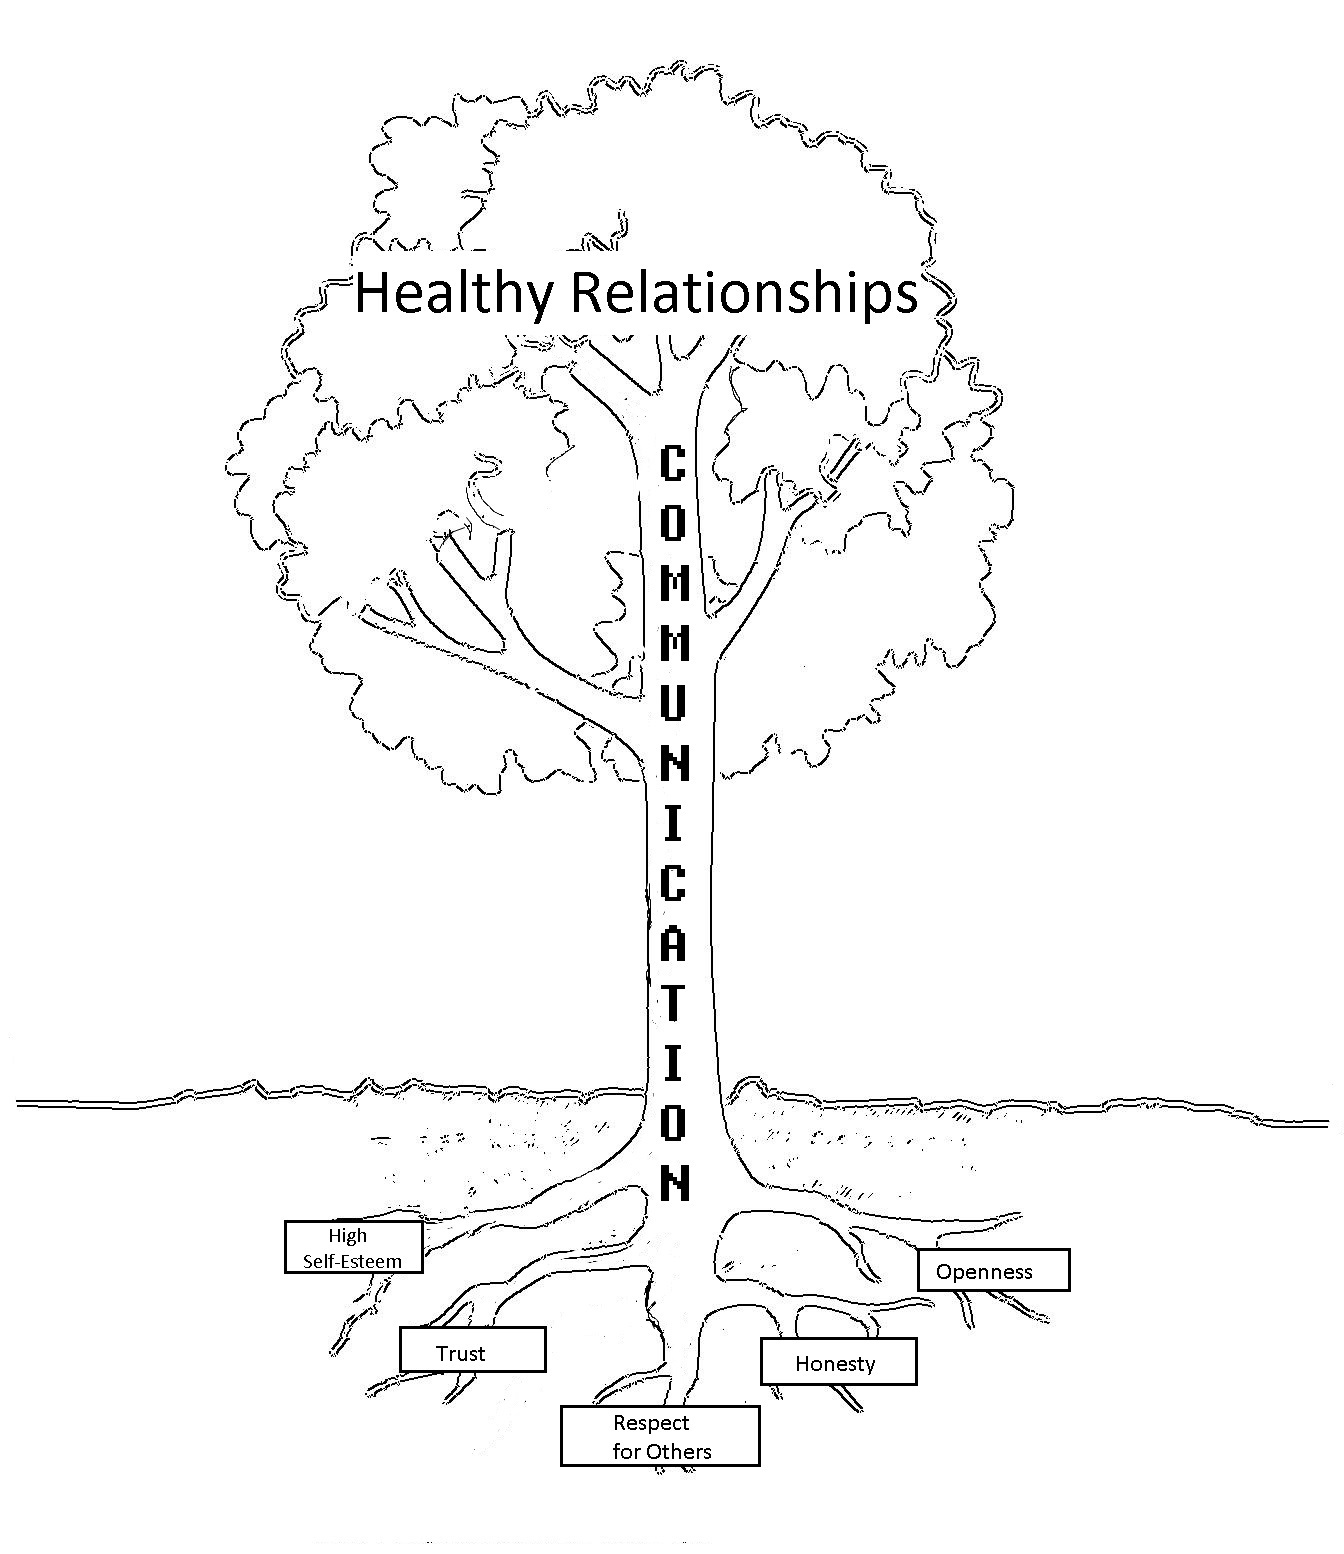 The Relationship Tree